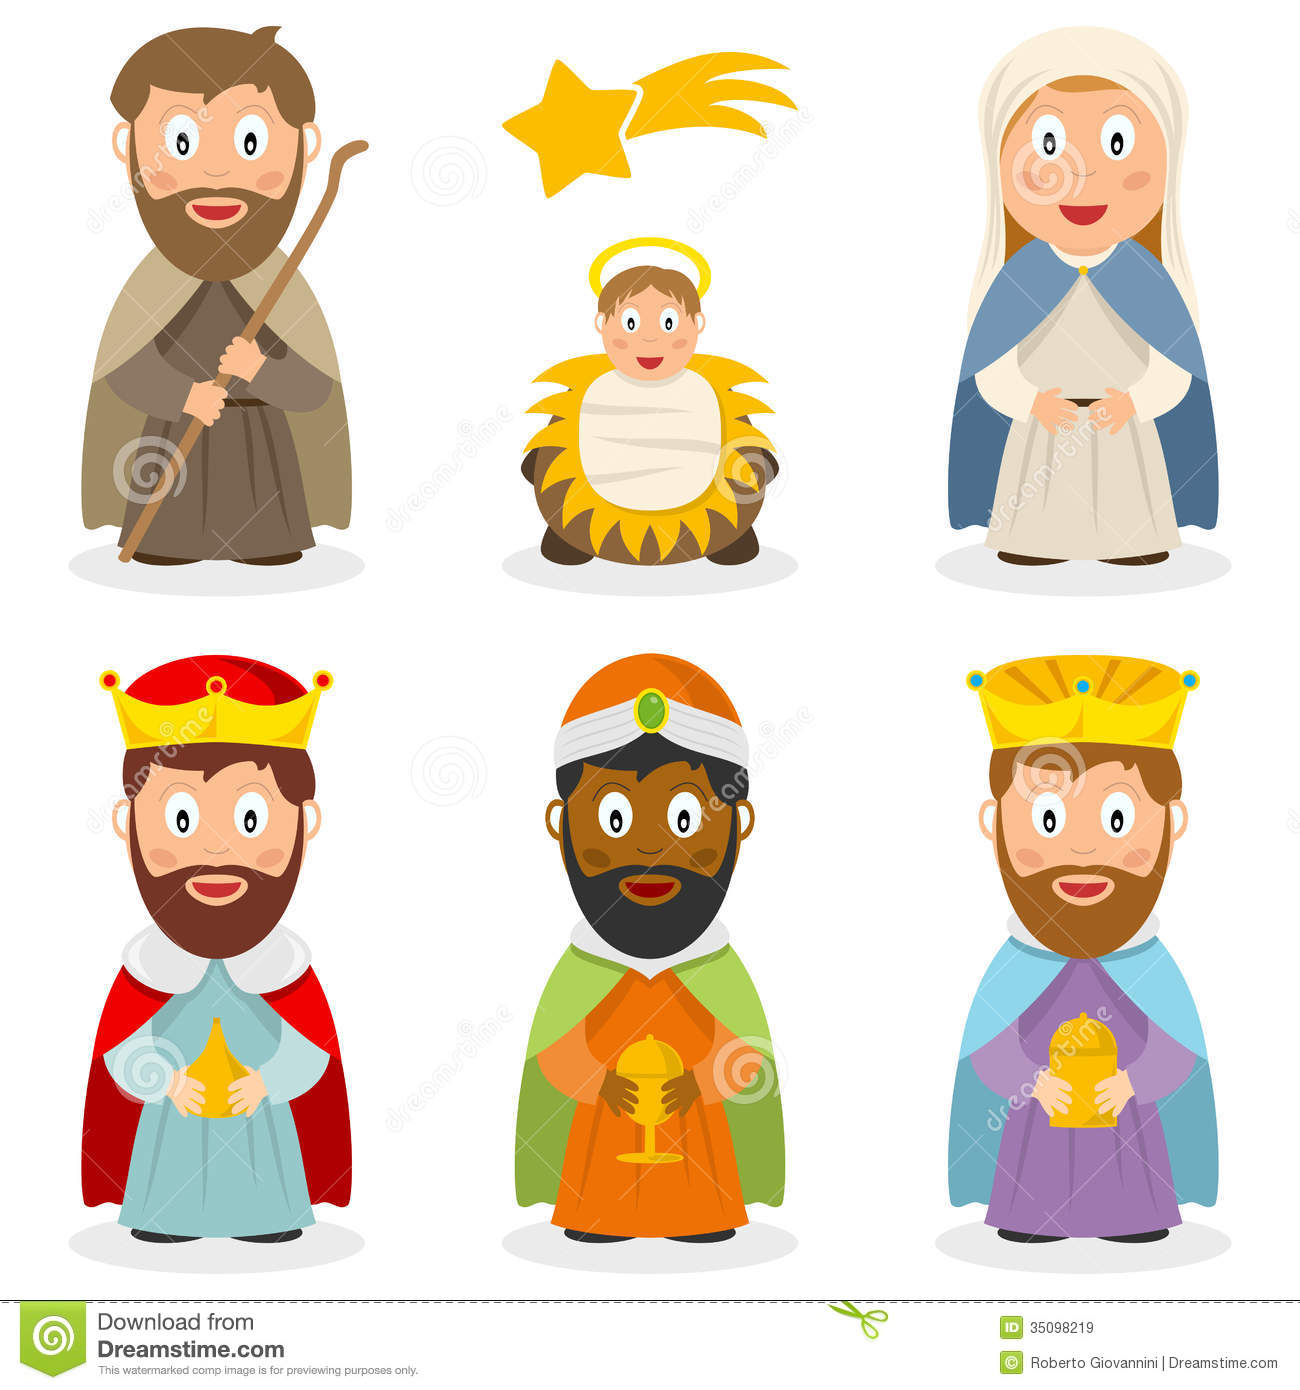 Collection of cartoon characters representing the Holy family (Joseph ...